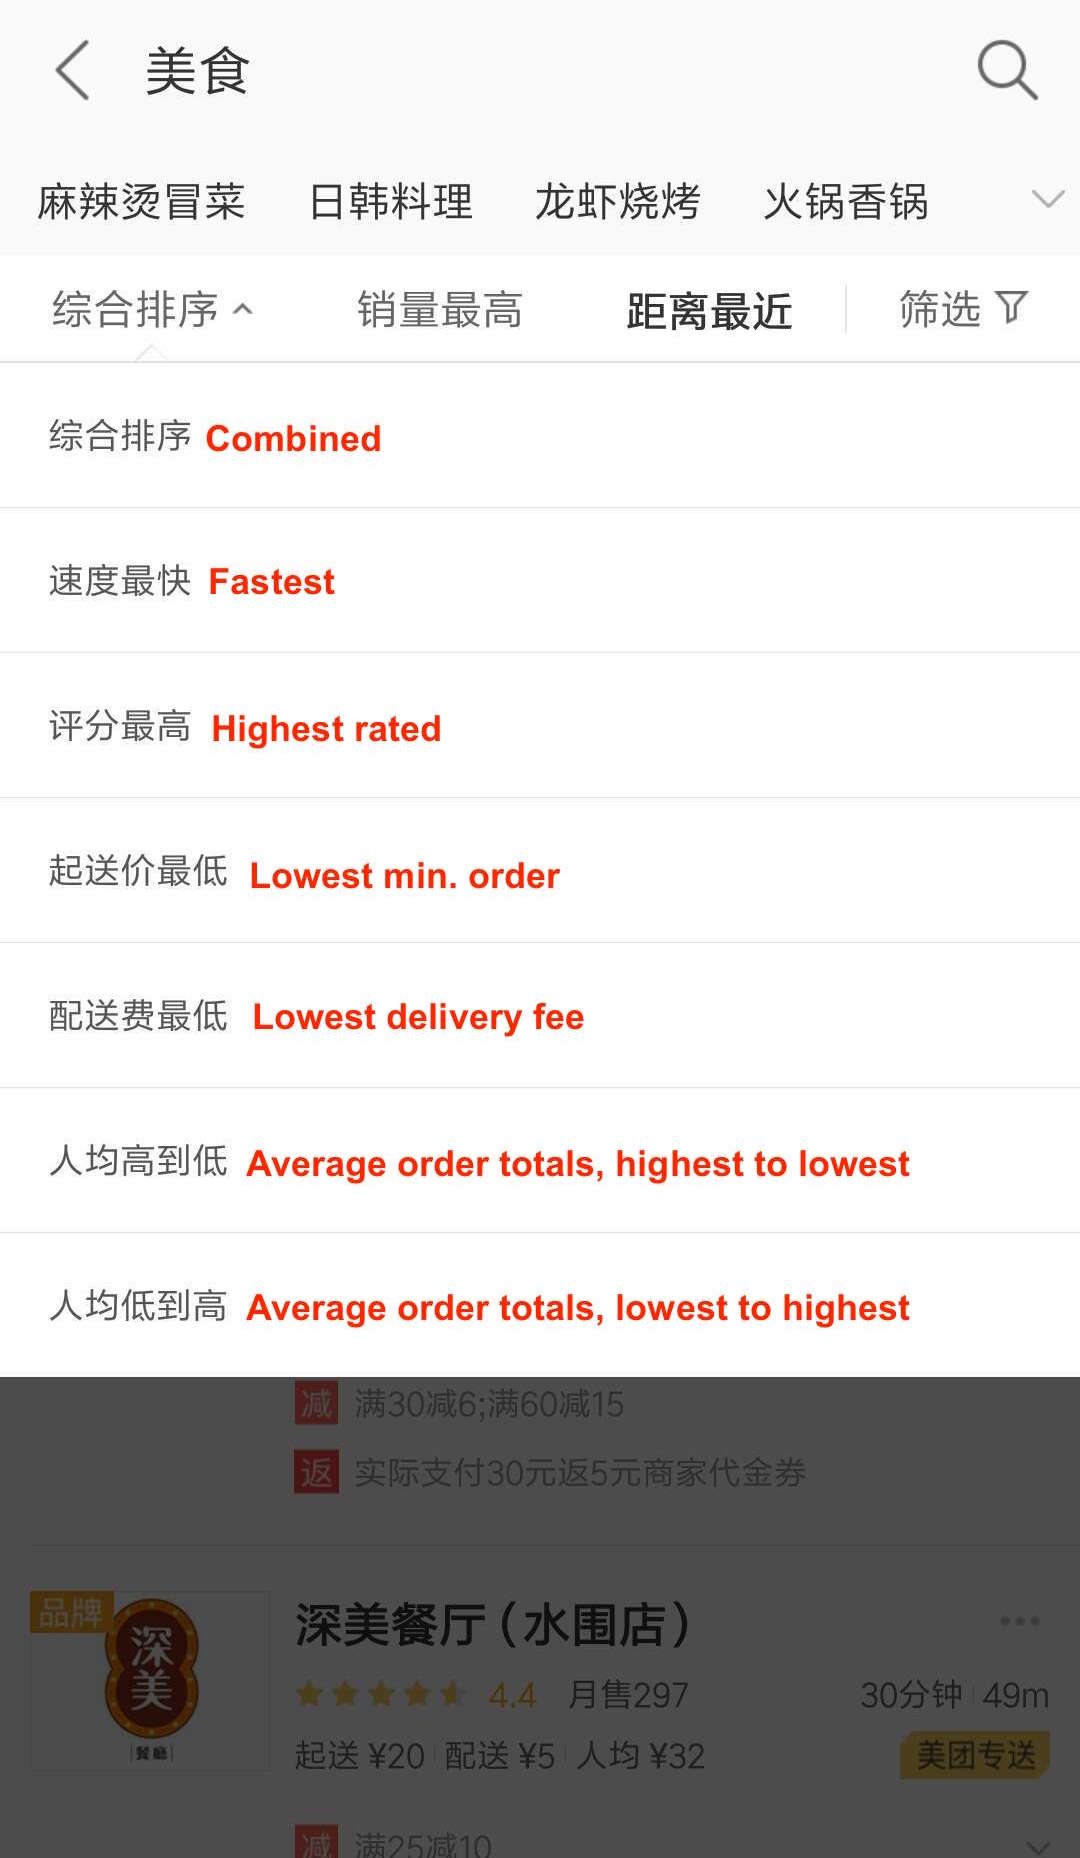 how-to-order-delivery-china-app-10.jpg